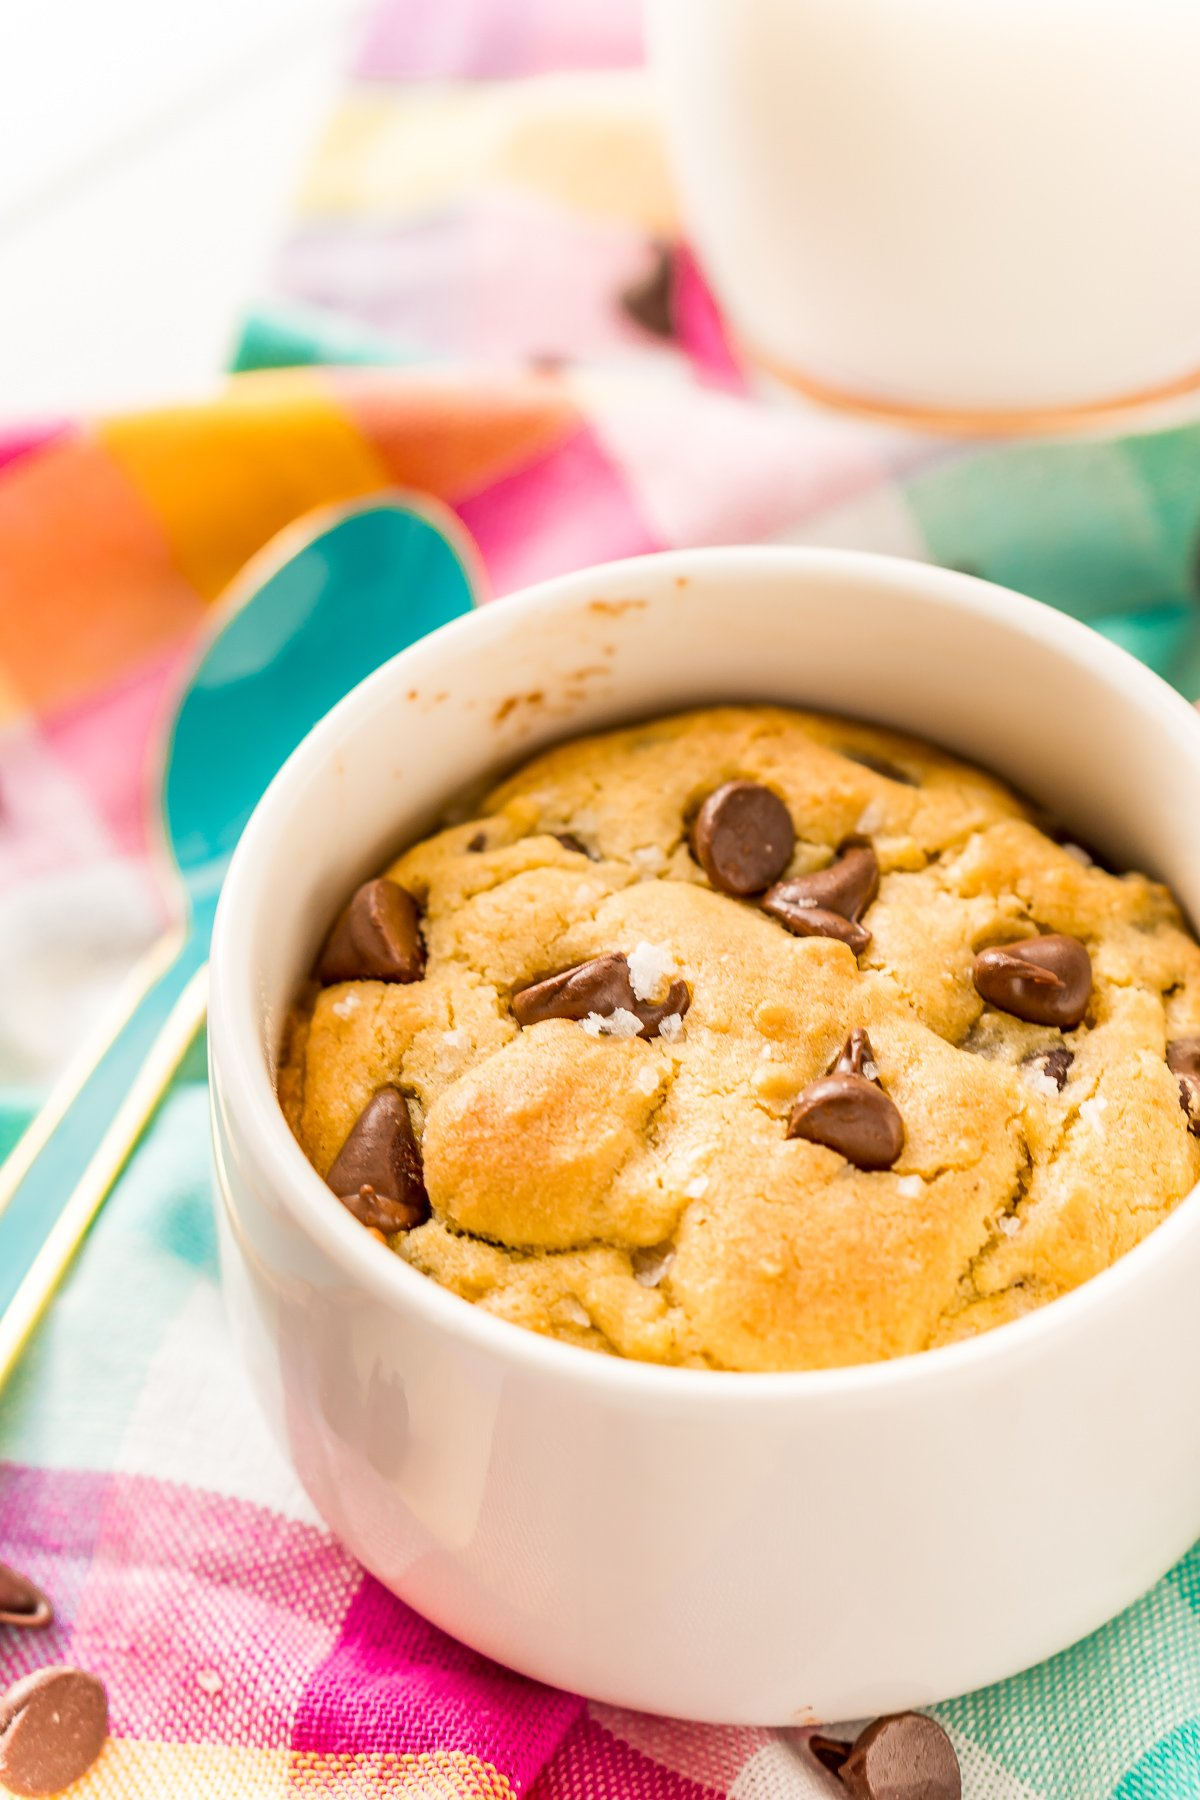 This Chocolate Chip Cookie For One is the perfect individual dessert when you're craving something sweet and don't want to make a huge batch of cookies!